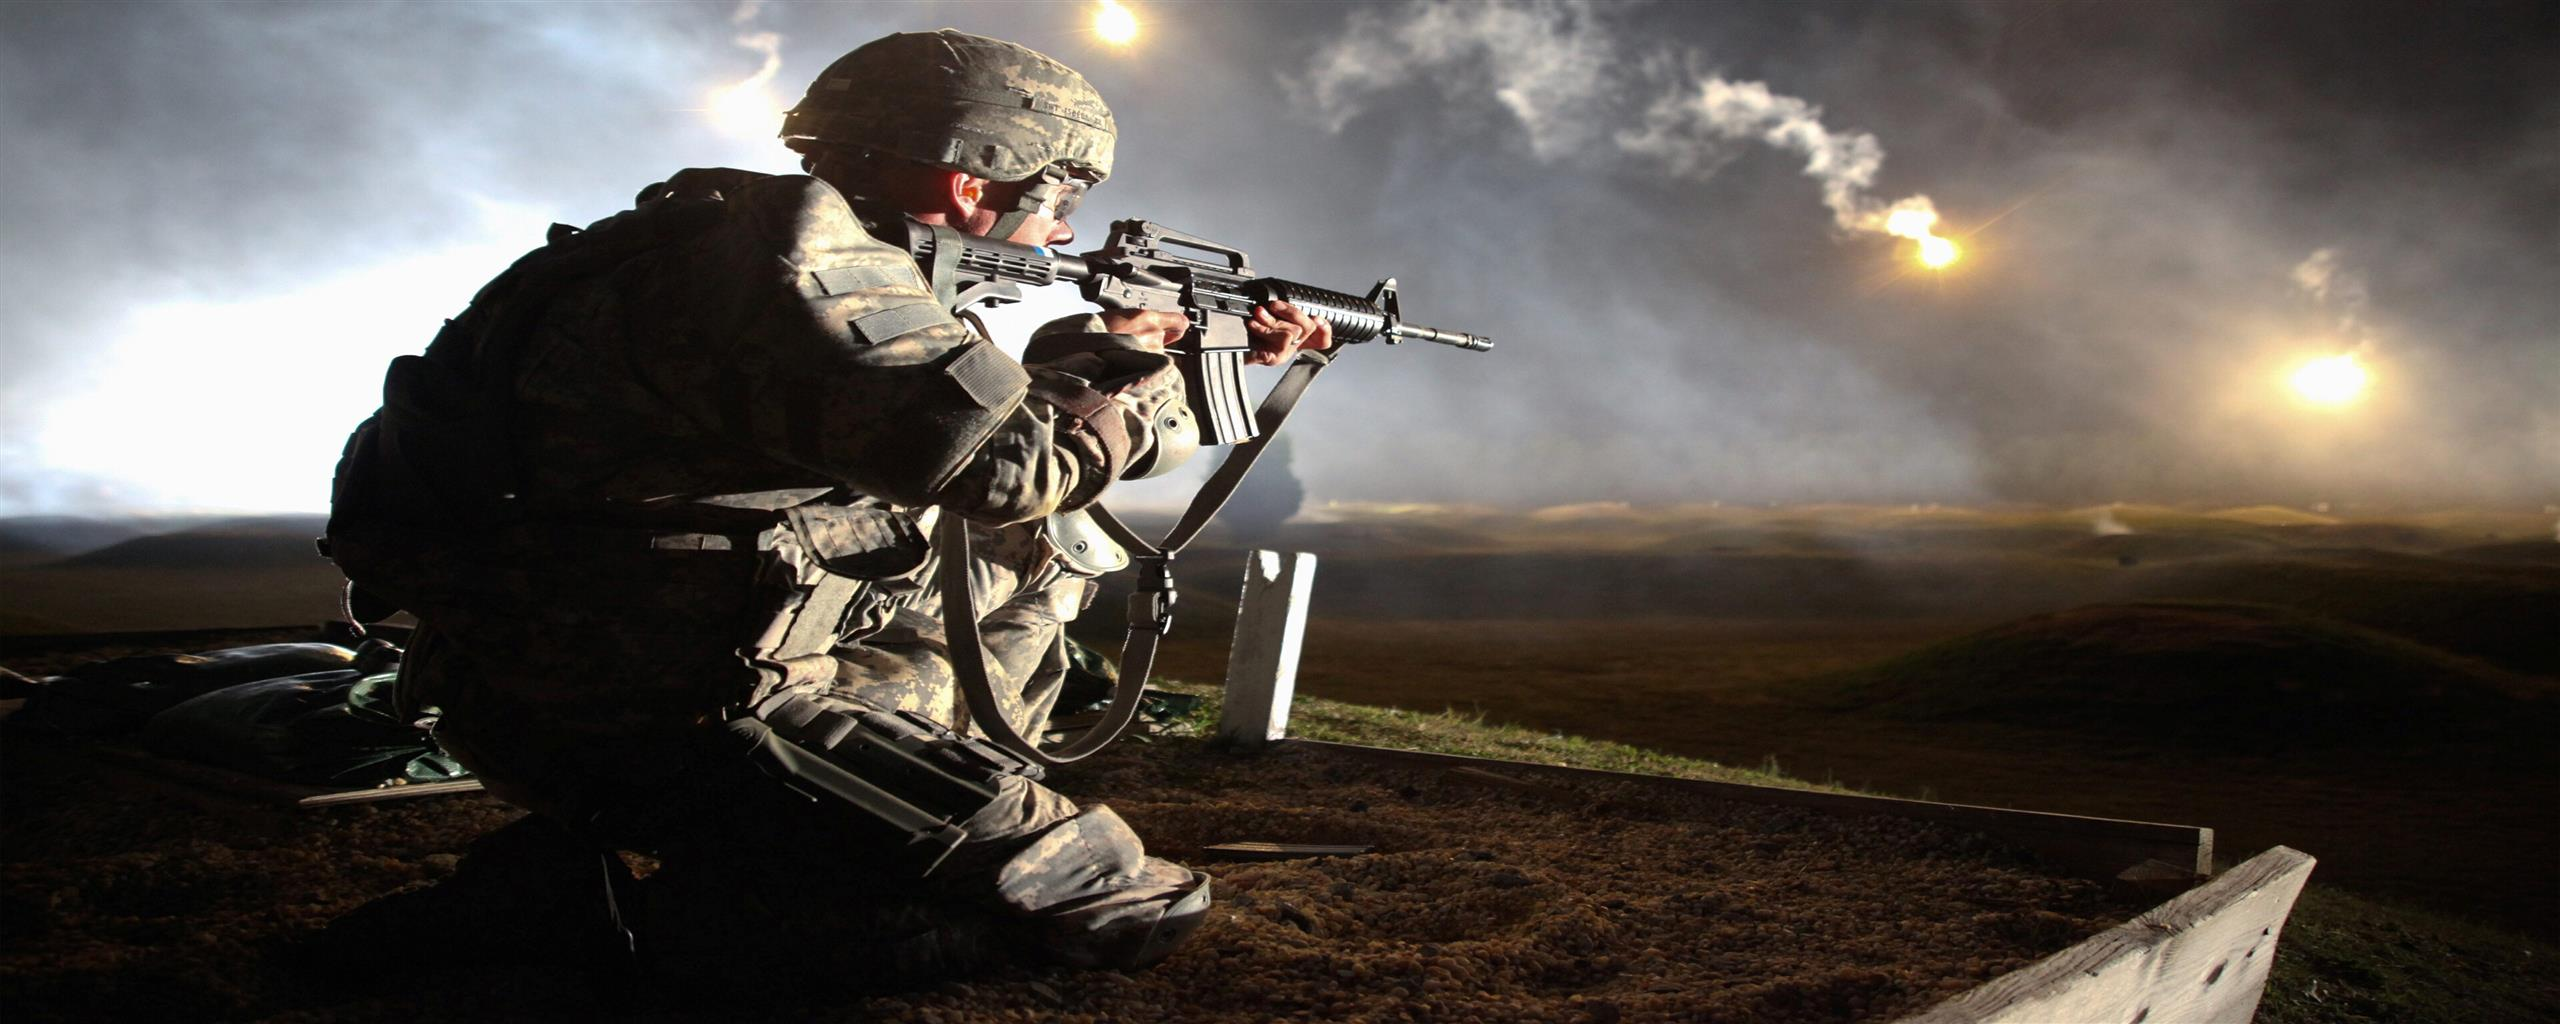 2560x1024 Army Soldier Petroling at Night Photo